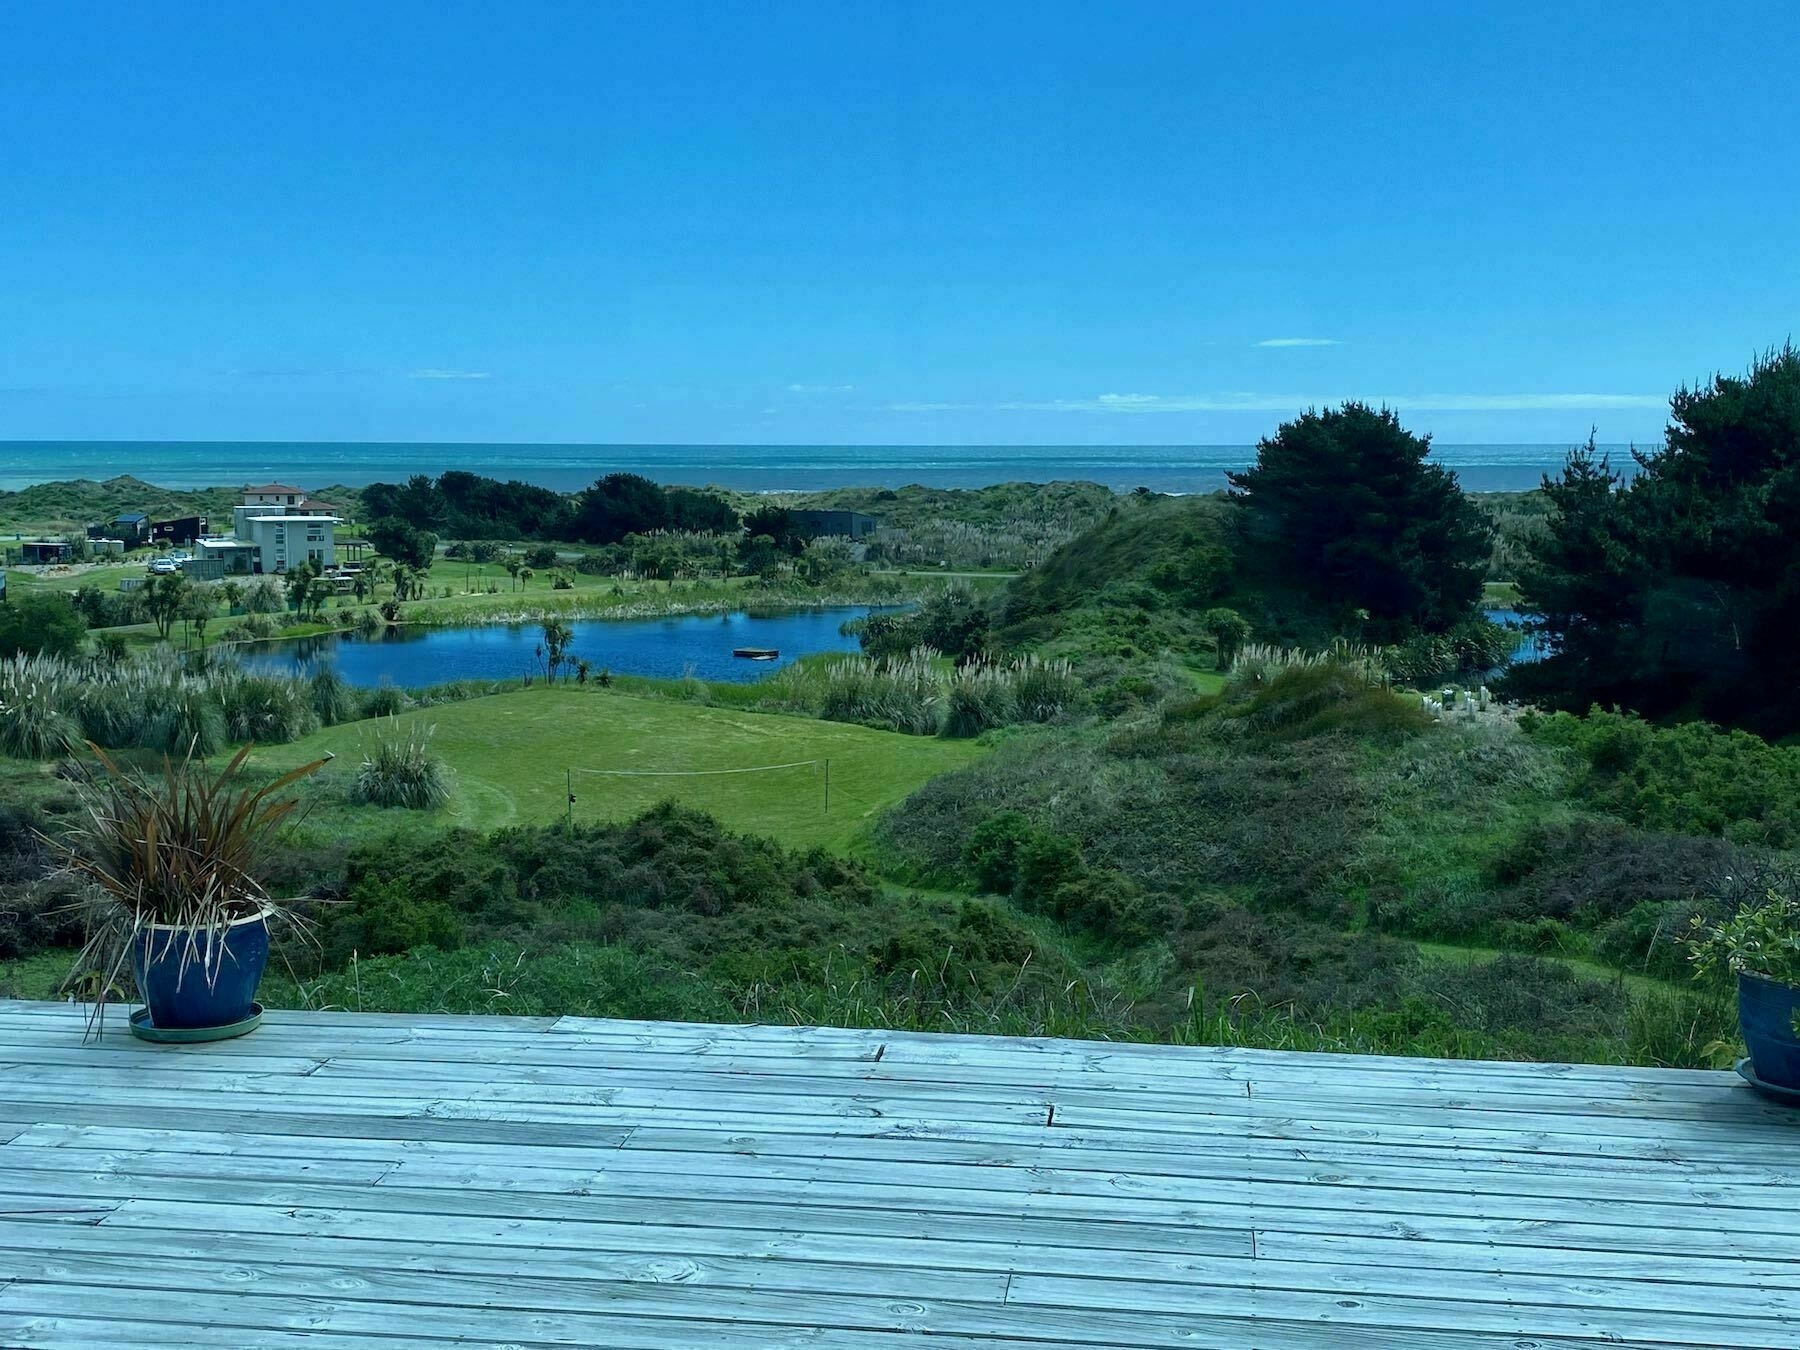 View from a hill across grassy land and dunes to the sea.